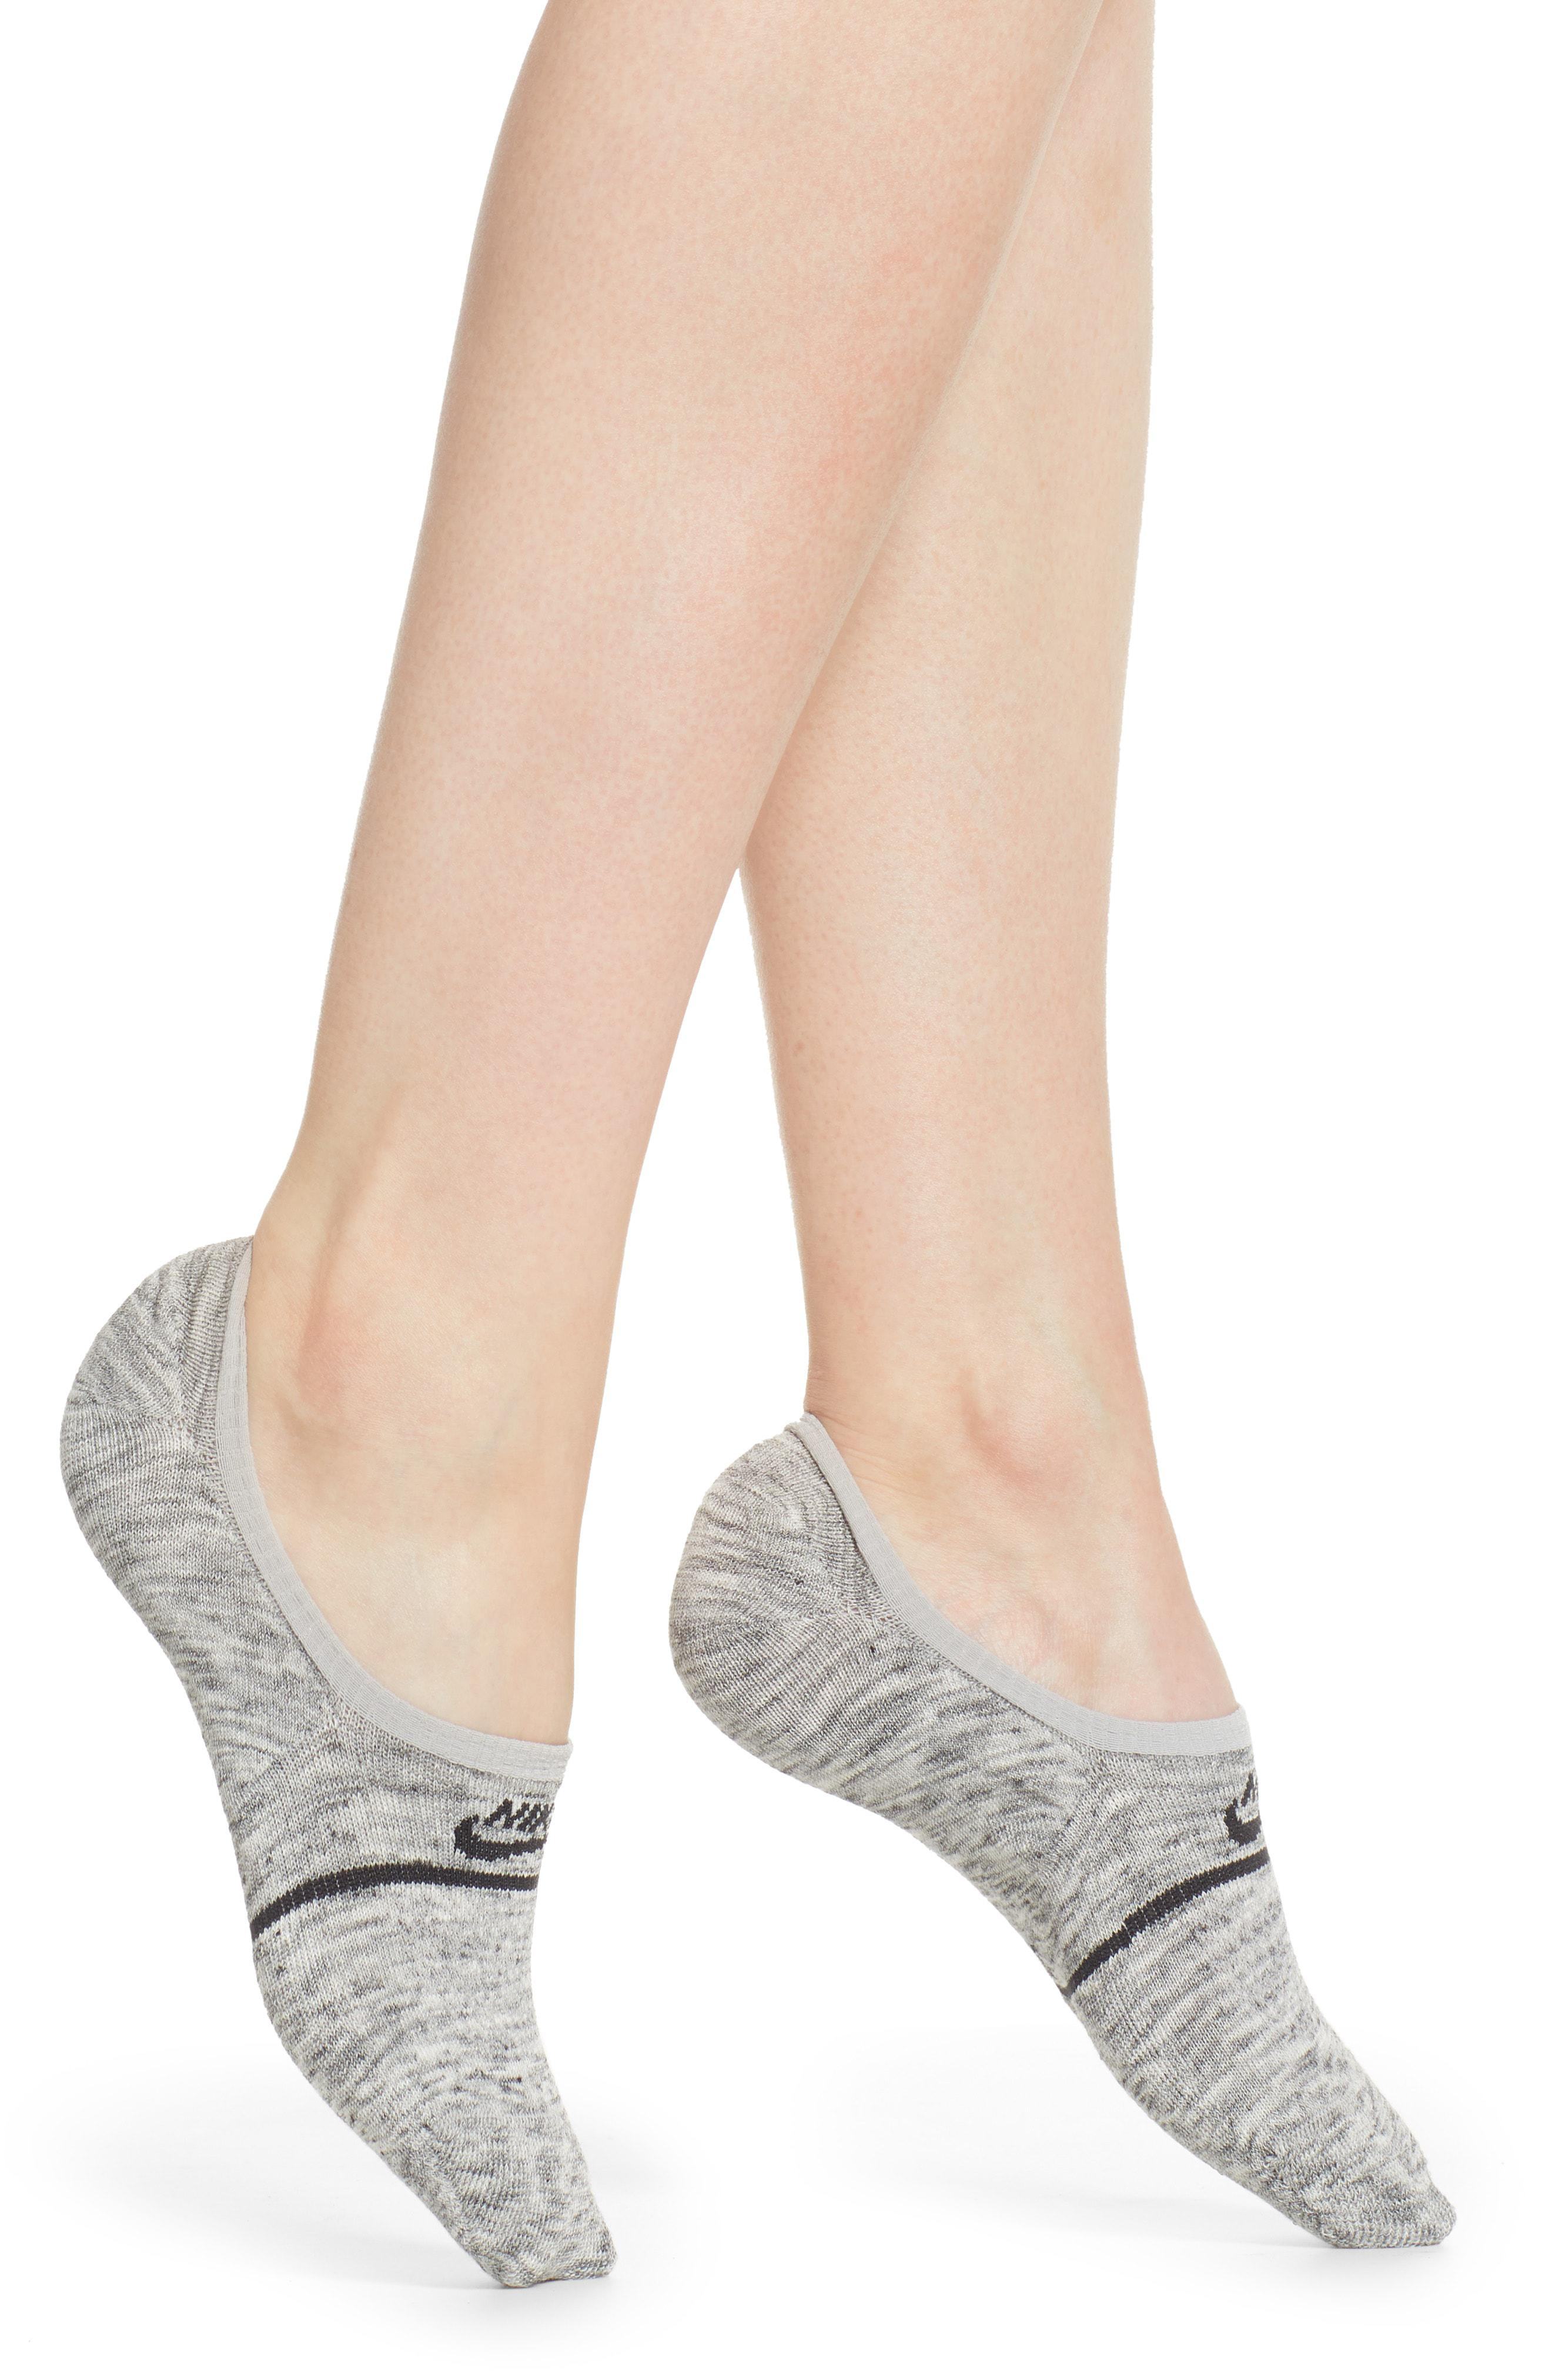 c62b2fe96 Nike 2-pack Snkr Sox Essential No Show Socks, Grey in Gray - Lyst